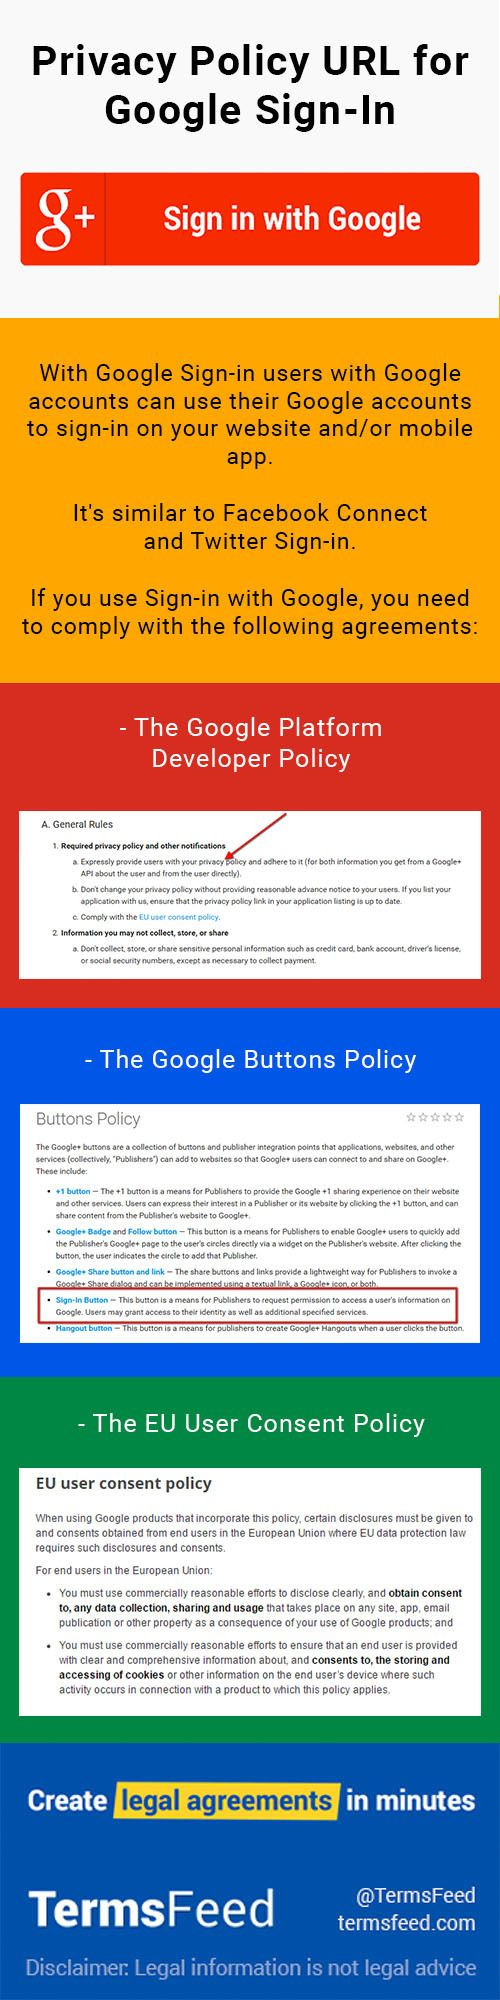 If your website or mobile app supports Google logins you must follow the requirements of:  - The Developer Policy of Google Platform - The Policy of Google Buttons - The EU User Consent Policy